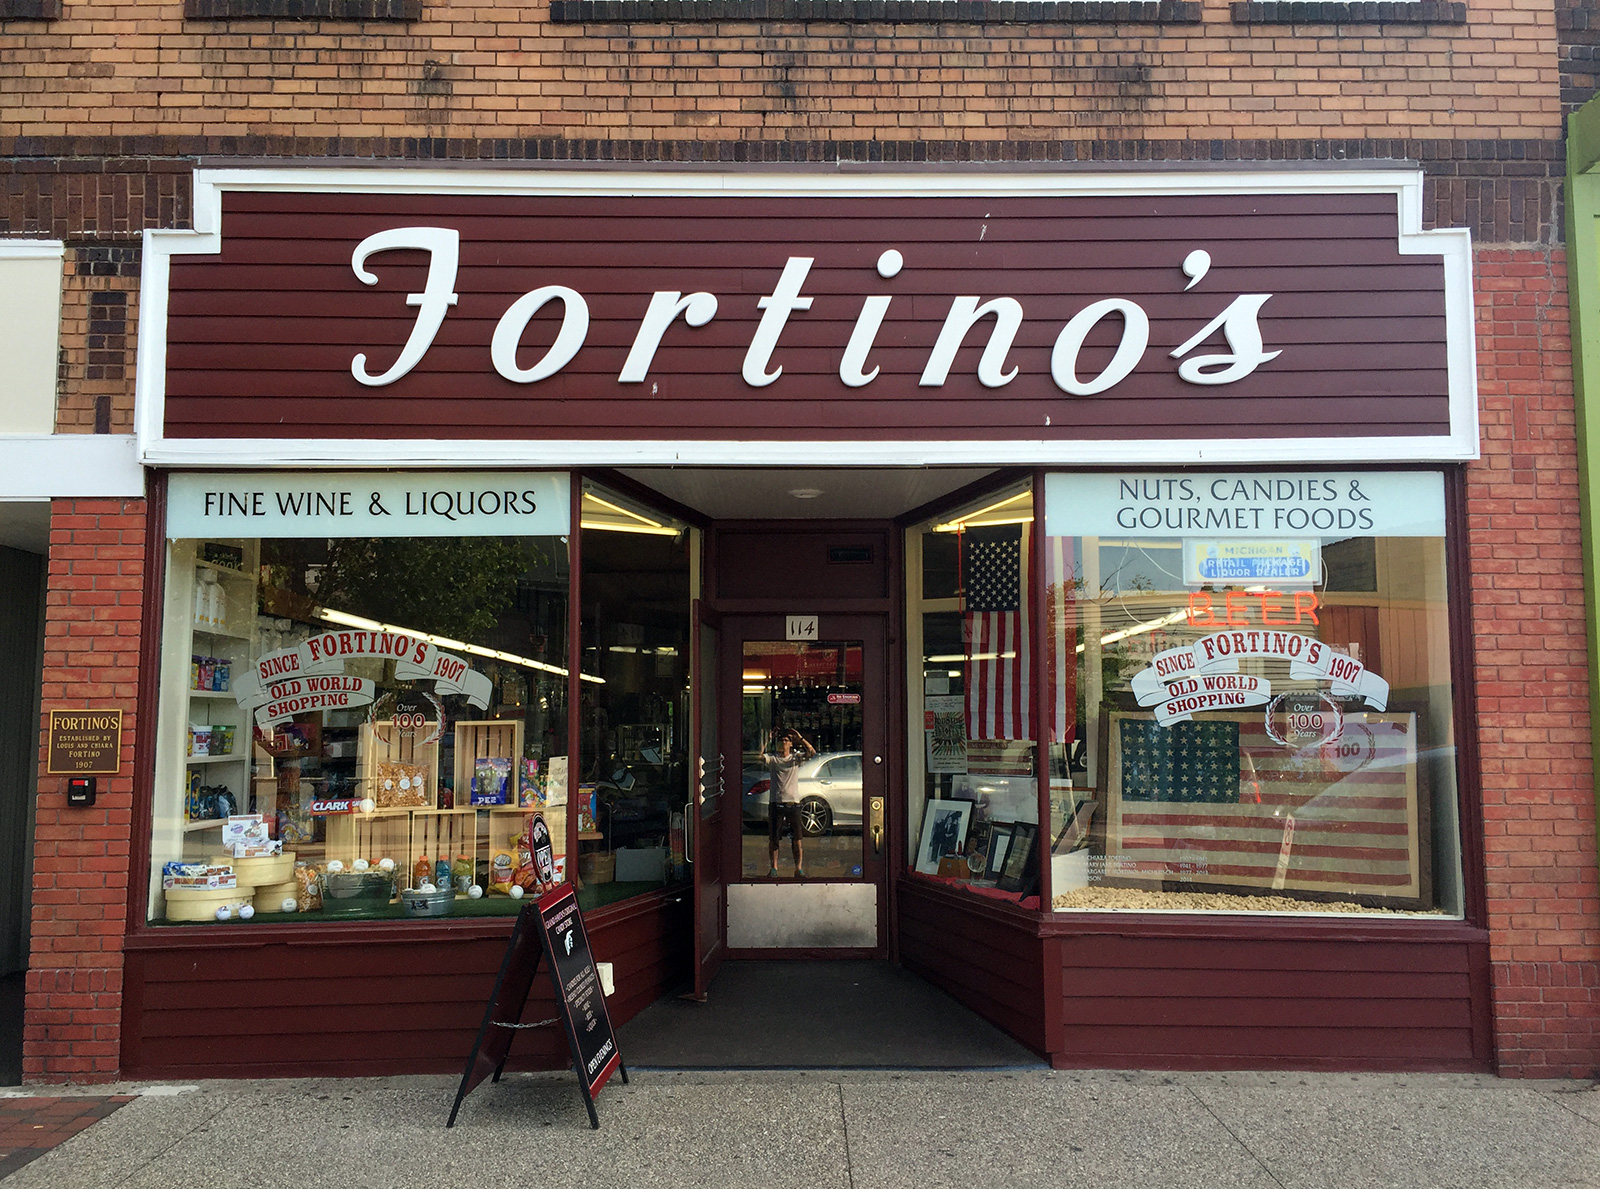 Fortino's in Grand Haven, Michigan by Jets Like Taxis